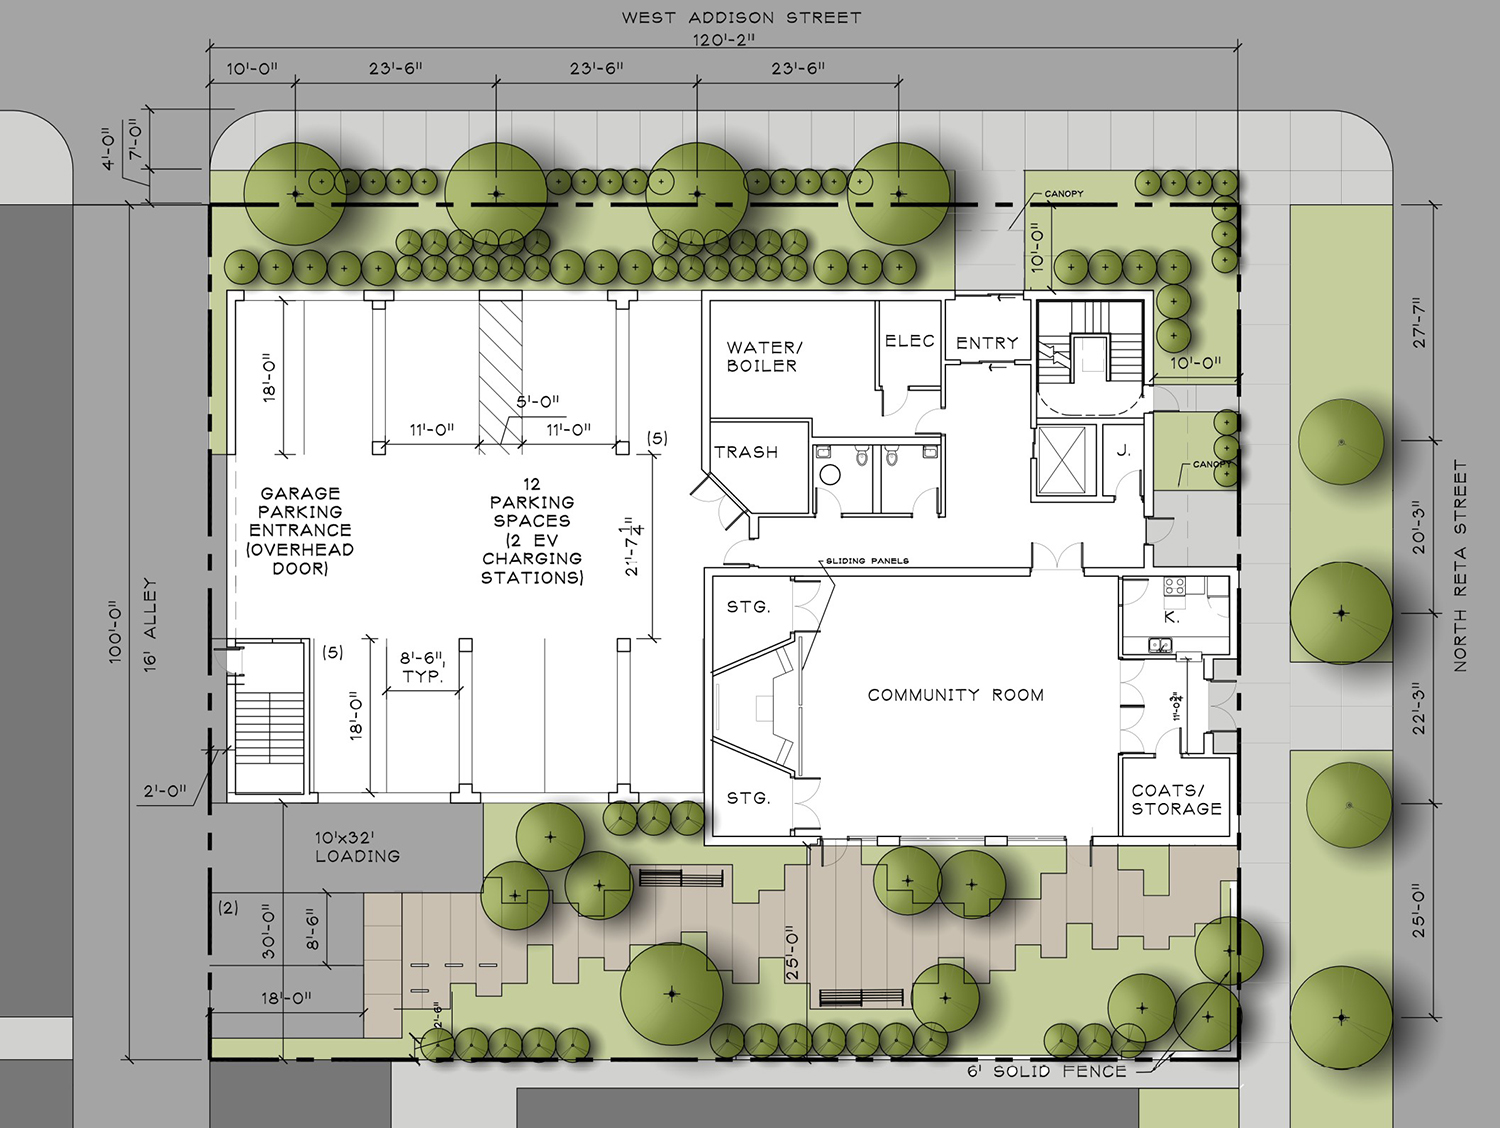 Site Plan for 835 W Addison Street. Drawing by Weese Langley Weese